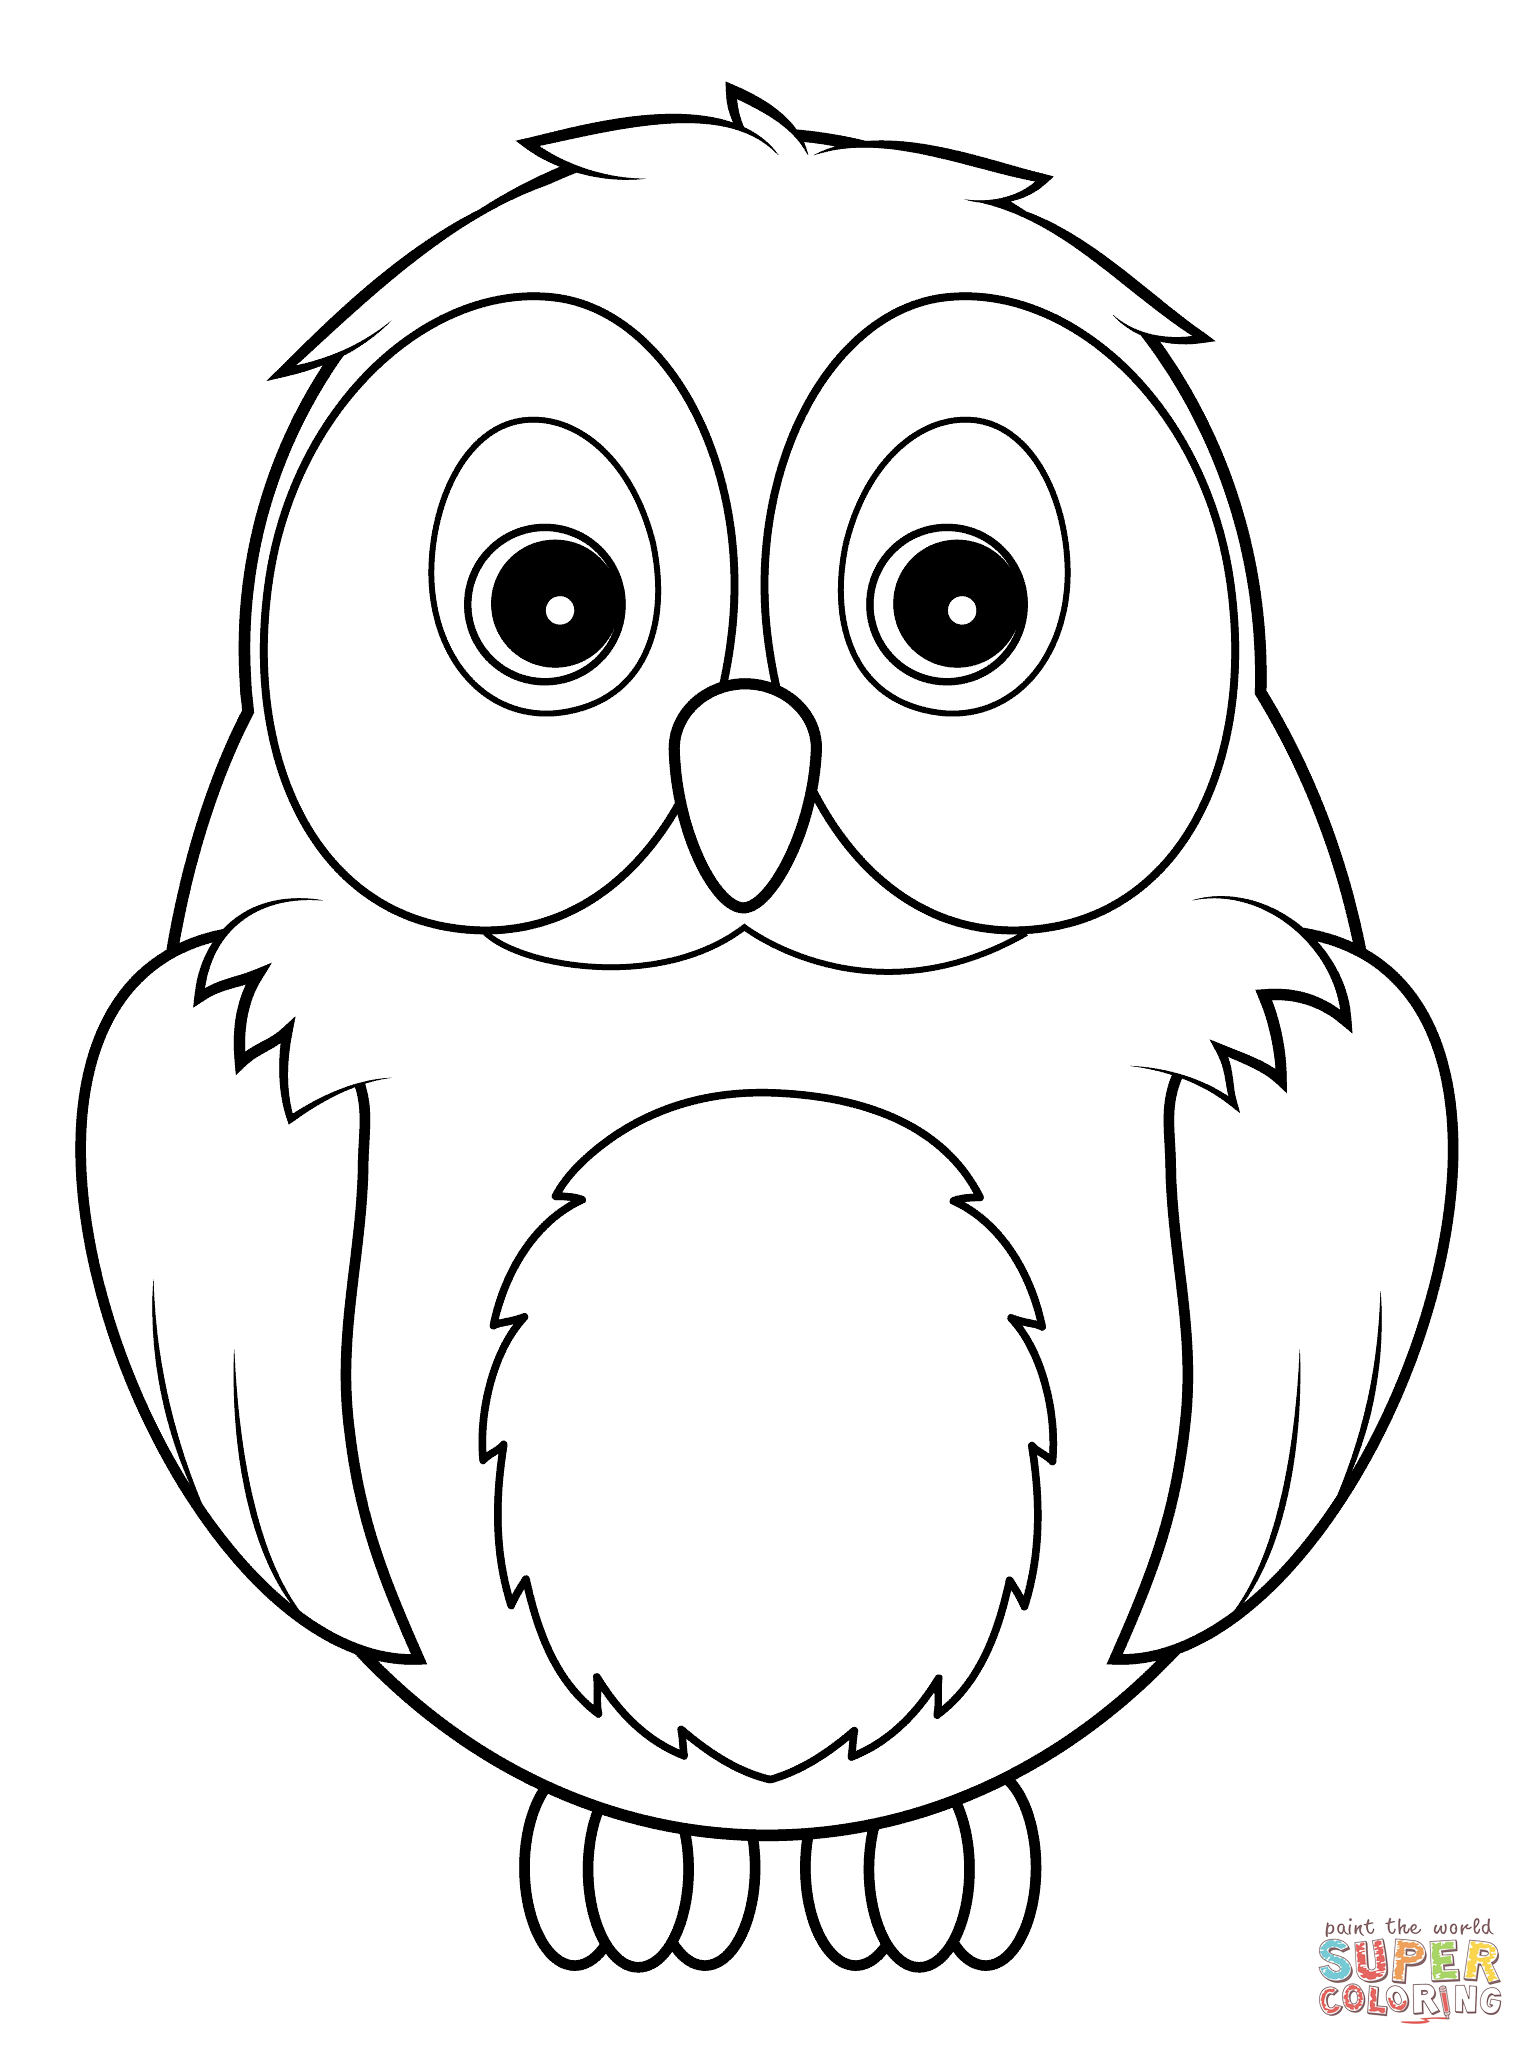 how to draw a cute snowy owl for kids - Google Search | artic ...